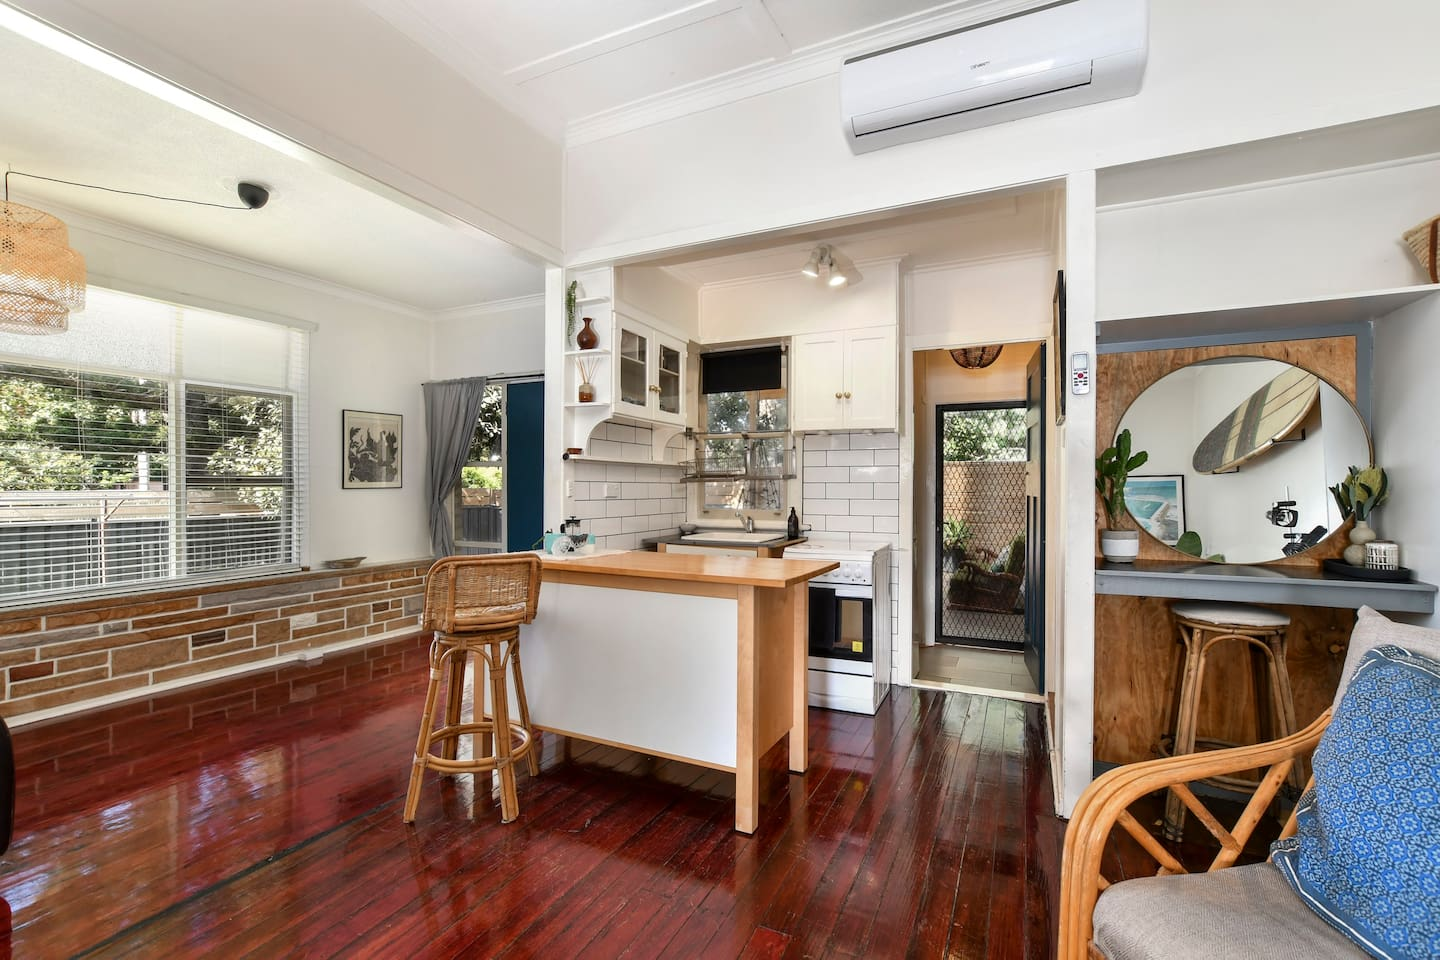 OPEN PLAN LAYOUT,AIR CON,  LIVING ROOM- SMALL KITCHEN fully equipped, oven, cooktop, fridge, microwave, TV with google chrome, and WIFI